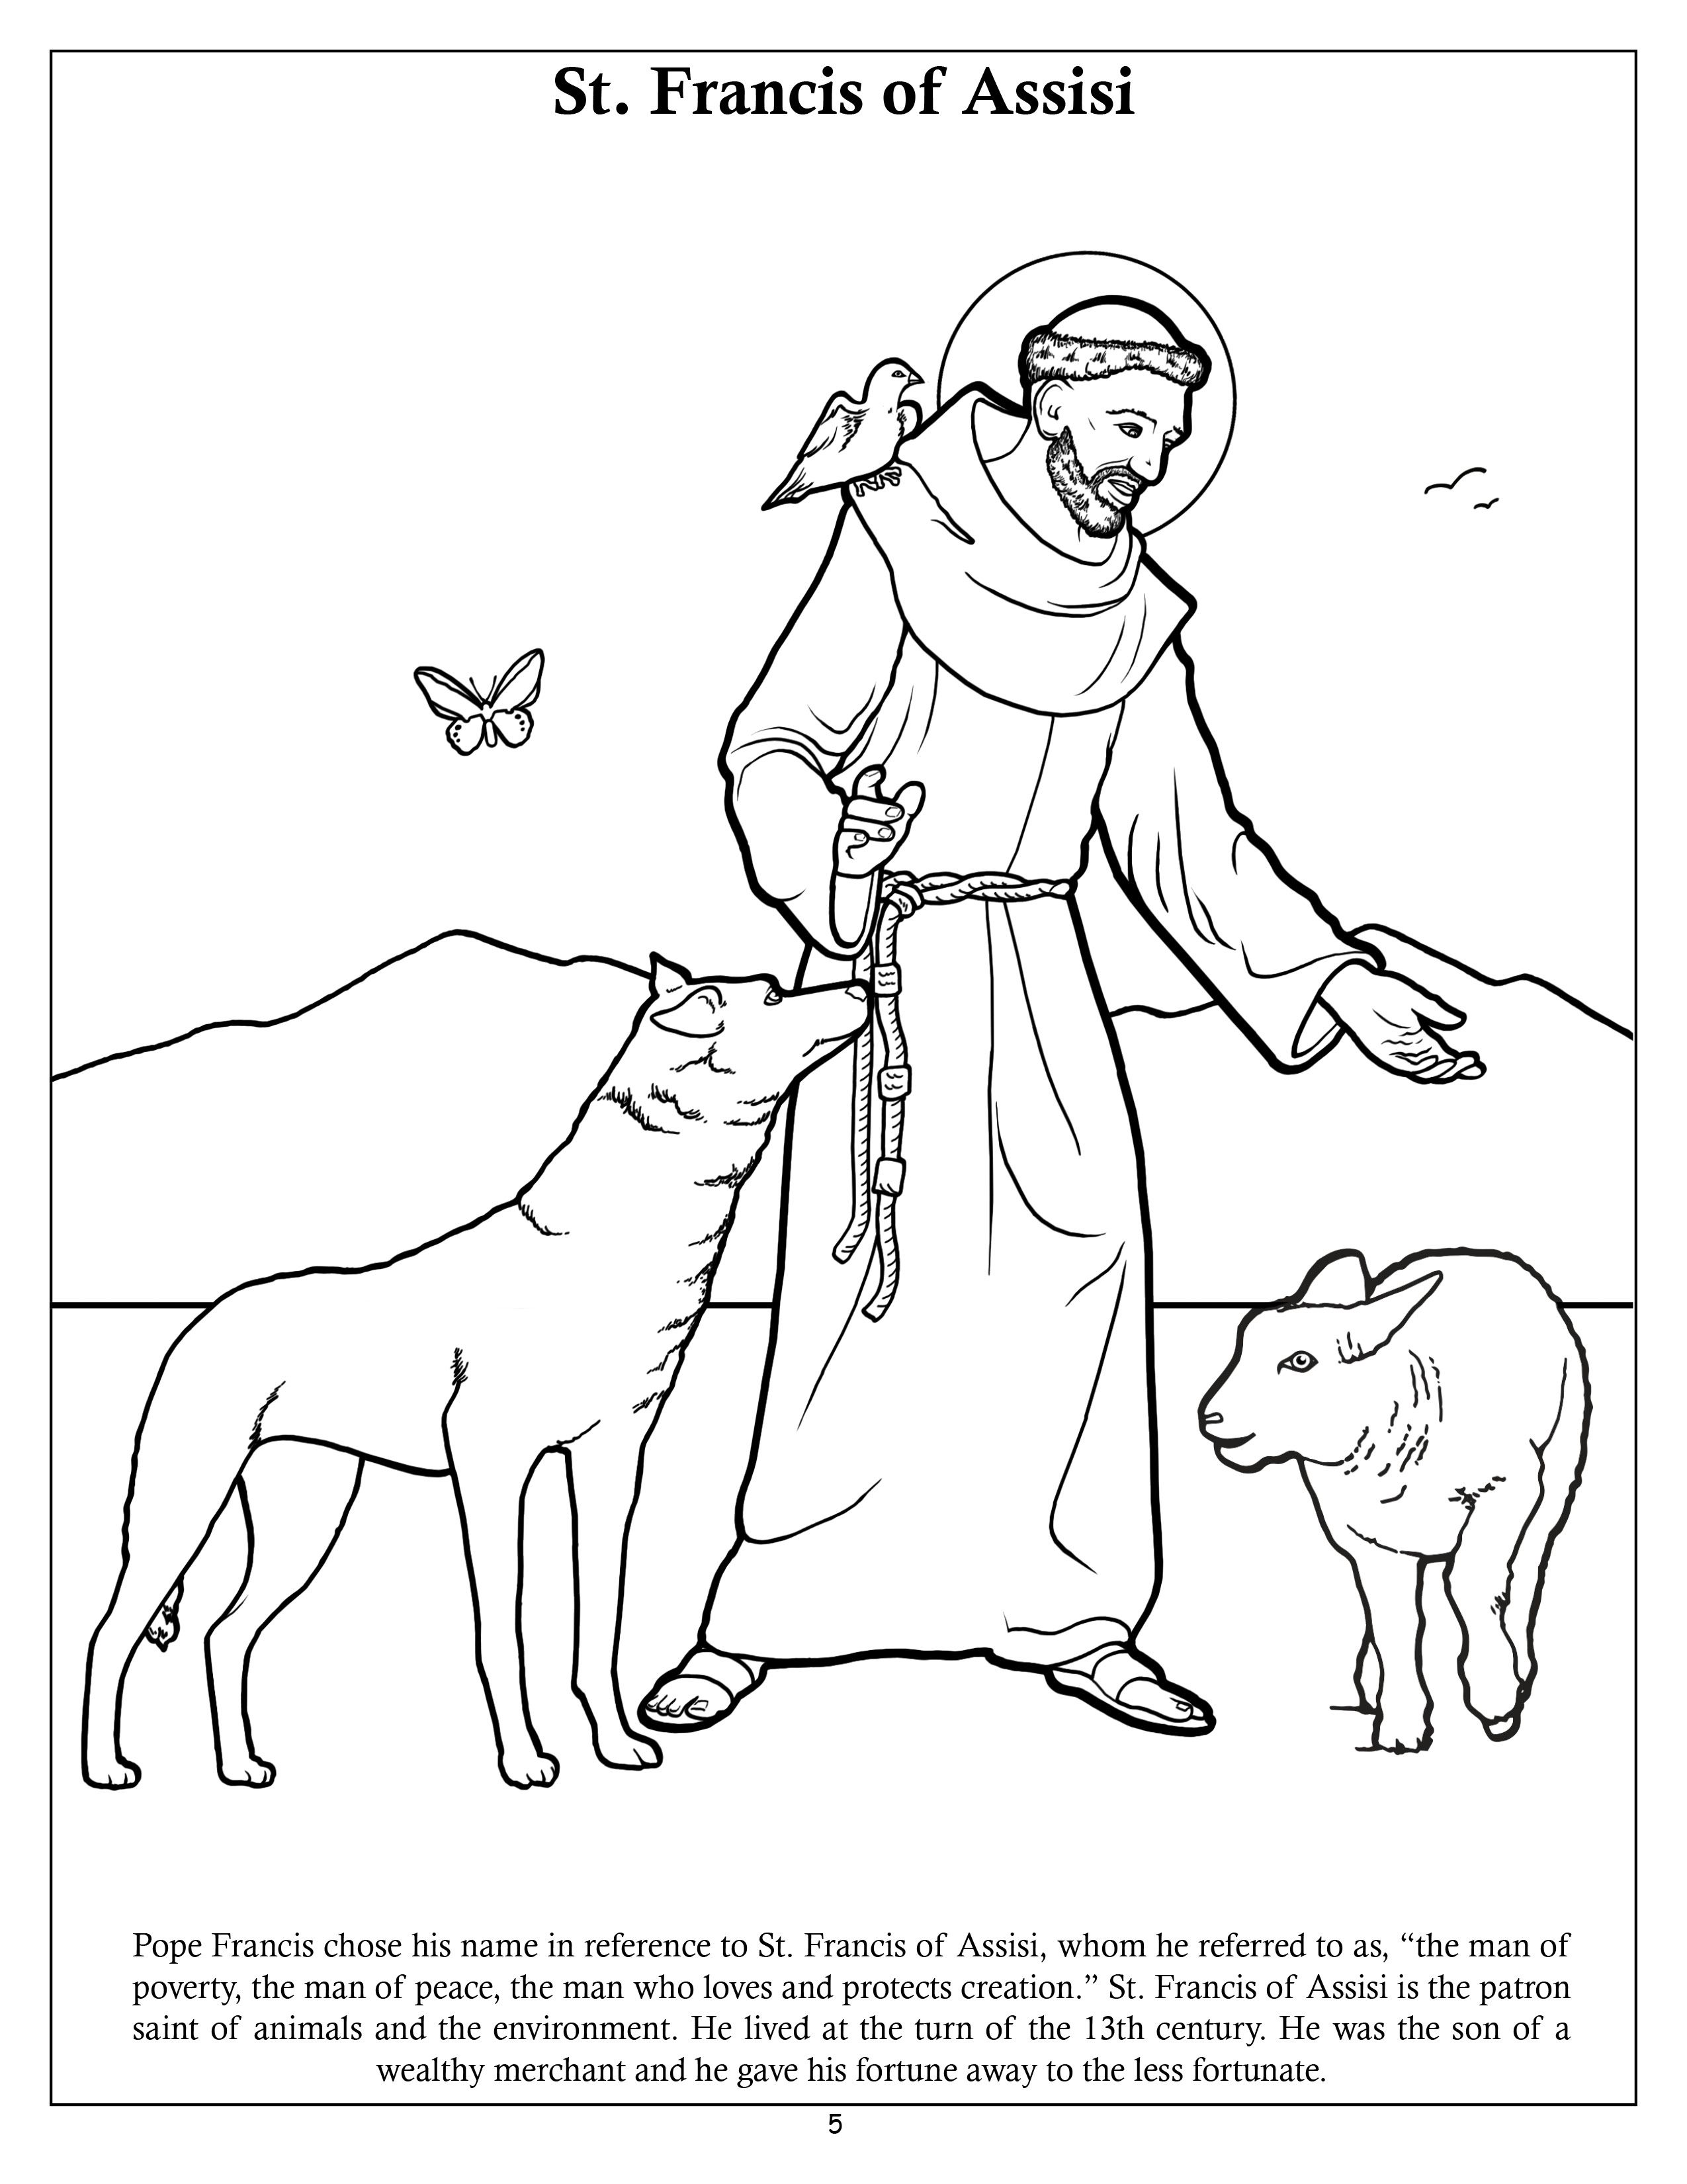 Popefrancis Jpg 2 550 3 301 Pixels St Francis Francis Of Assisi Coloring Pages